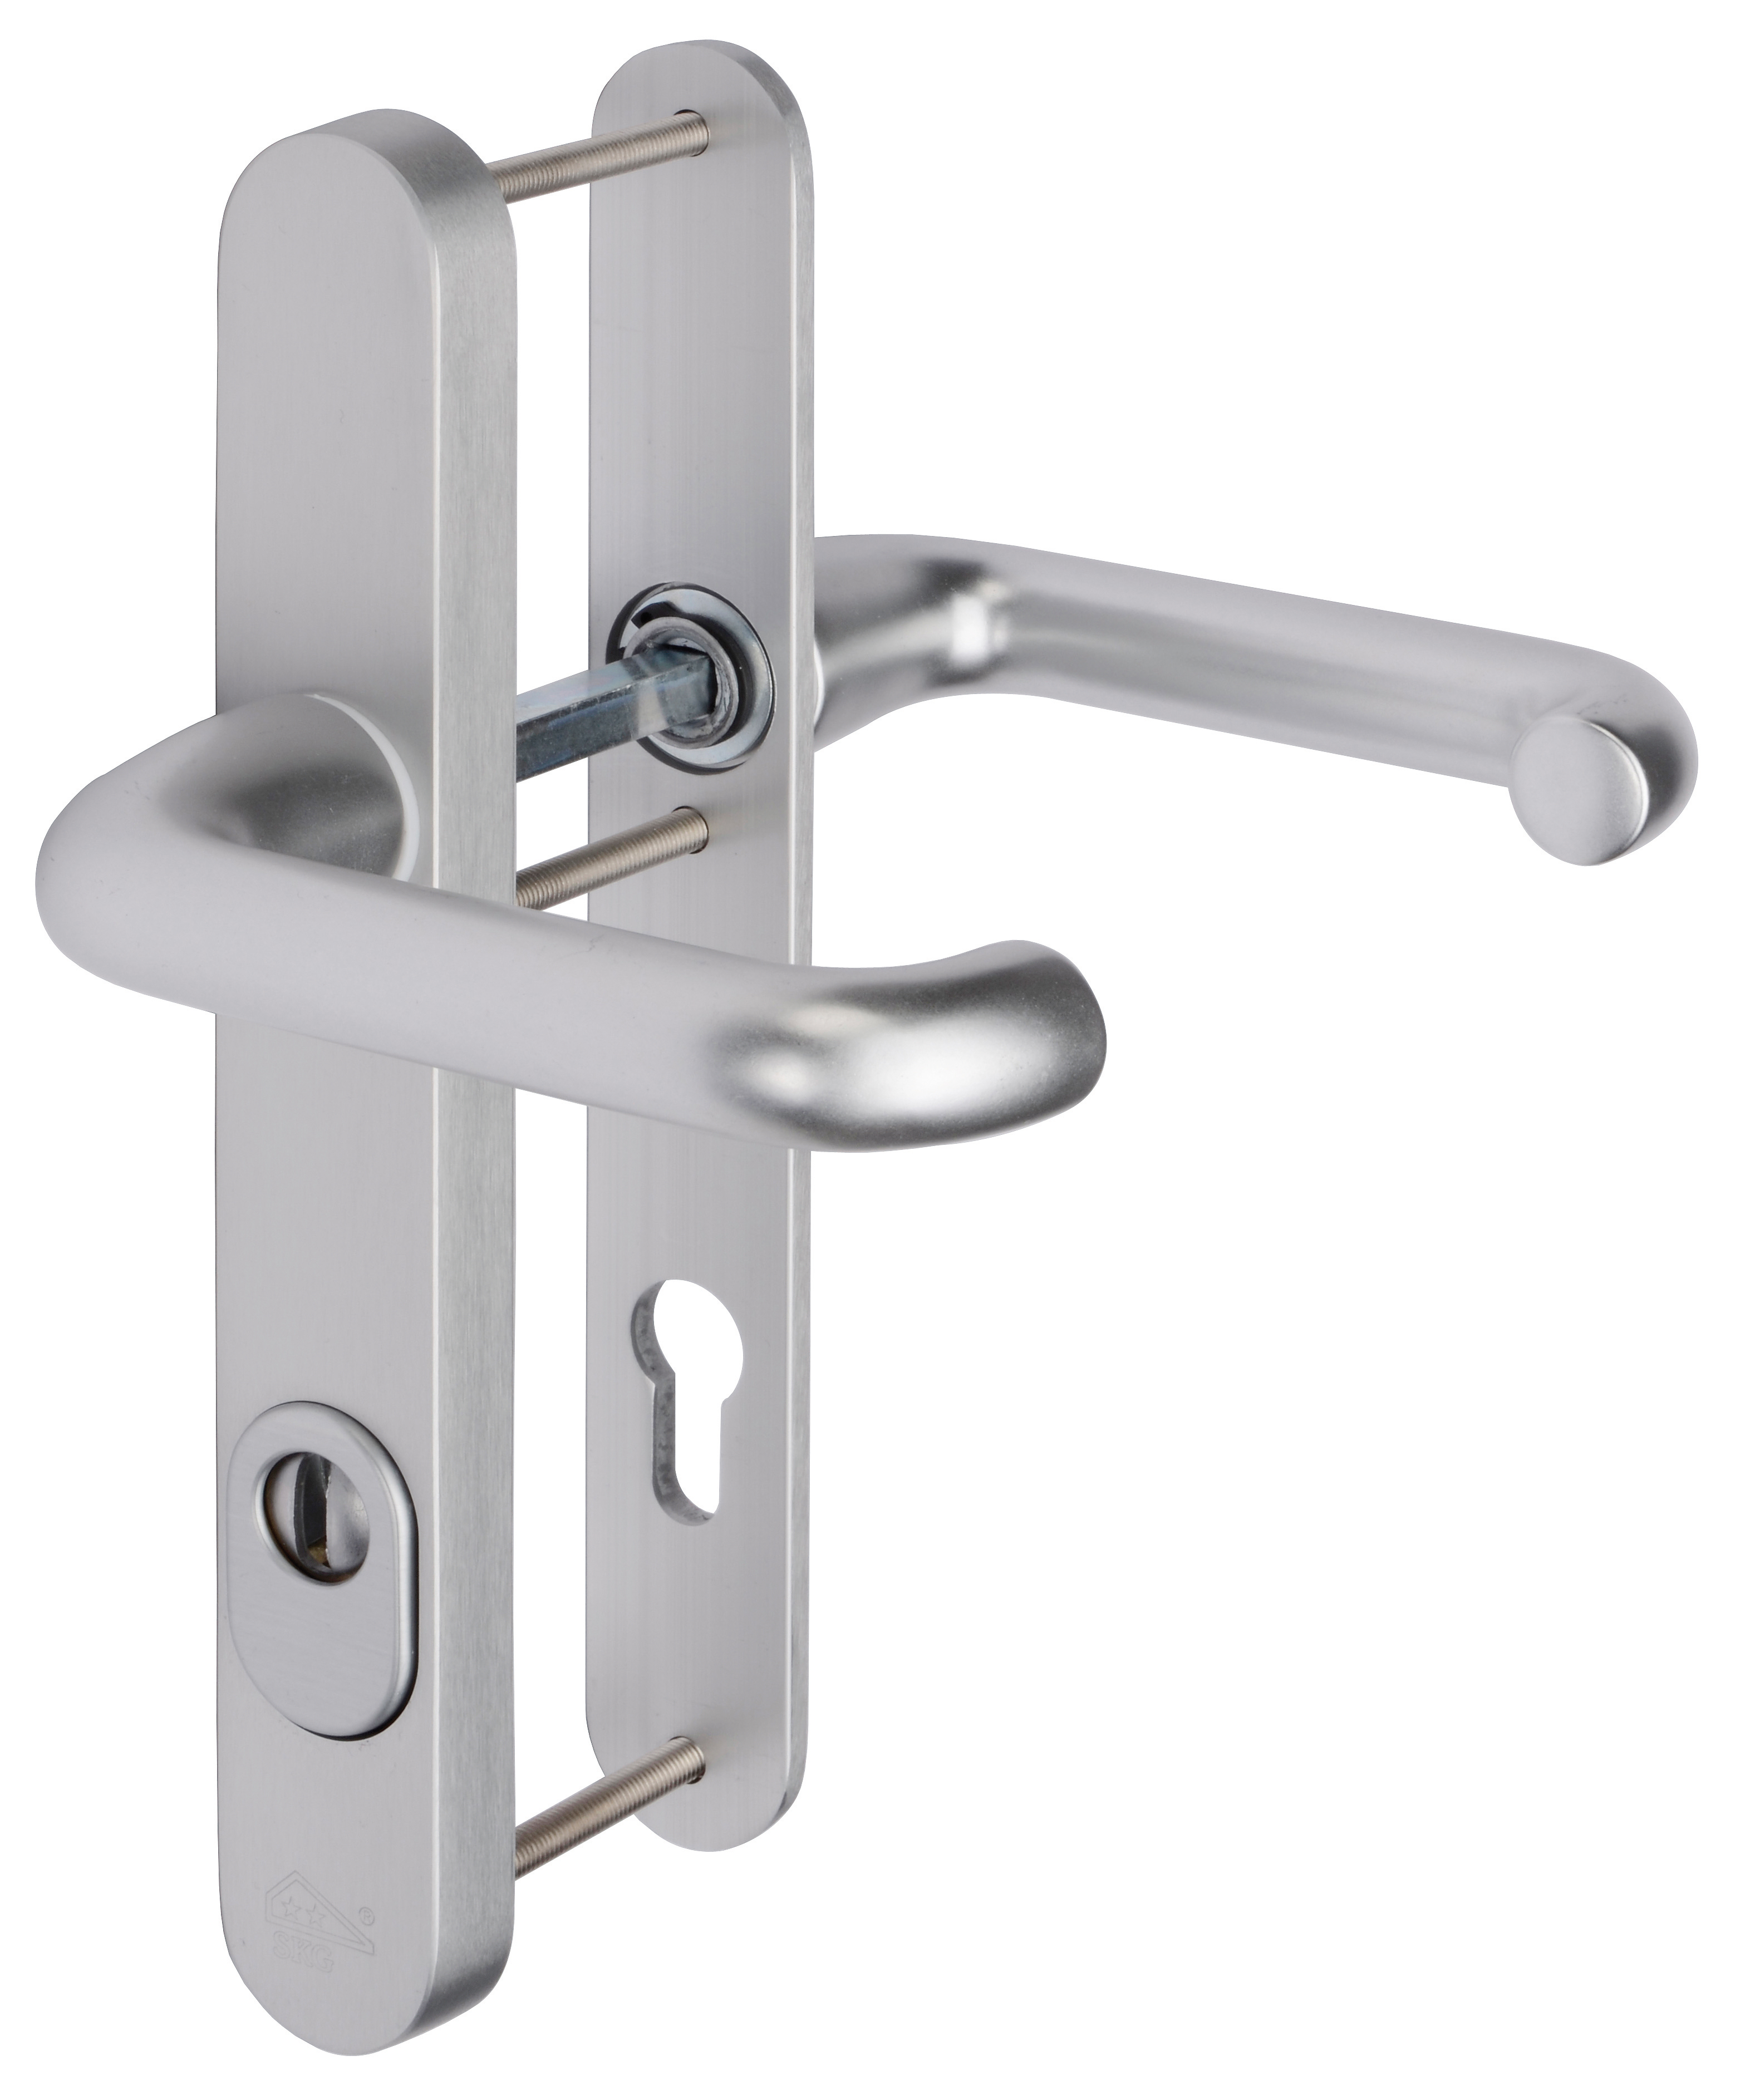 Art. No. 9098/208, Profile door set with cylinder tear-off protection